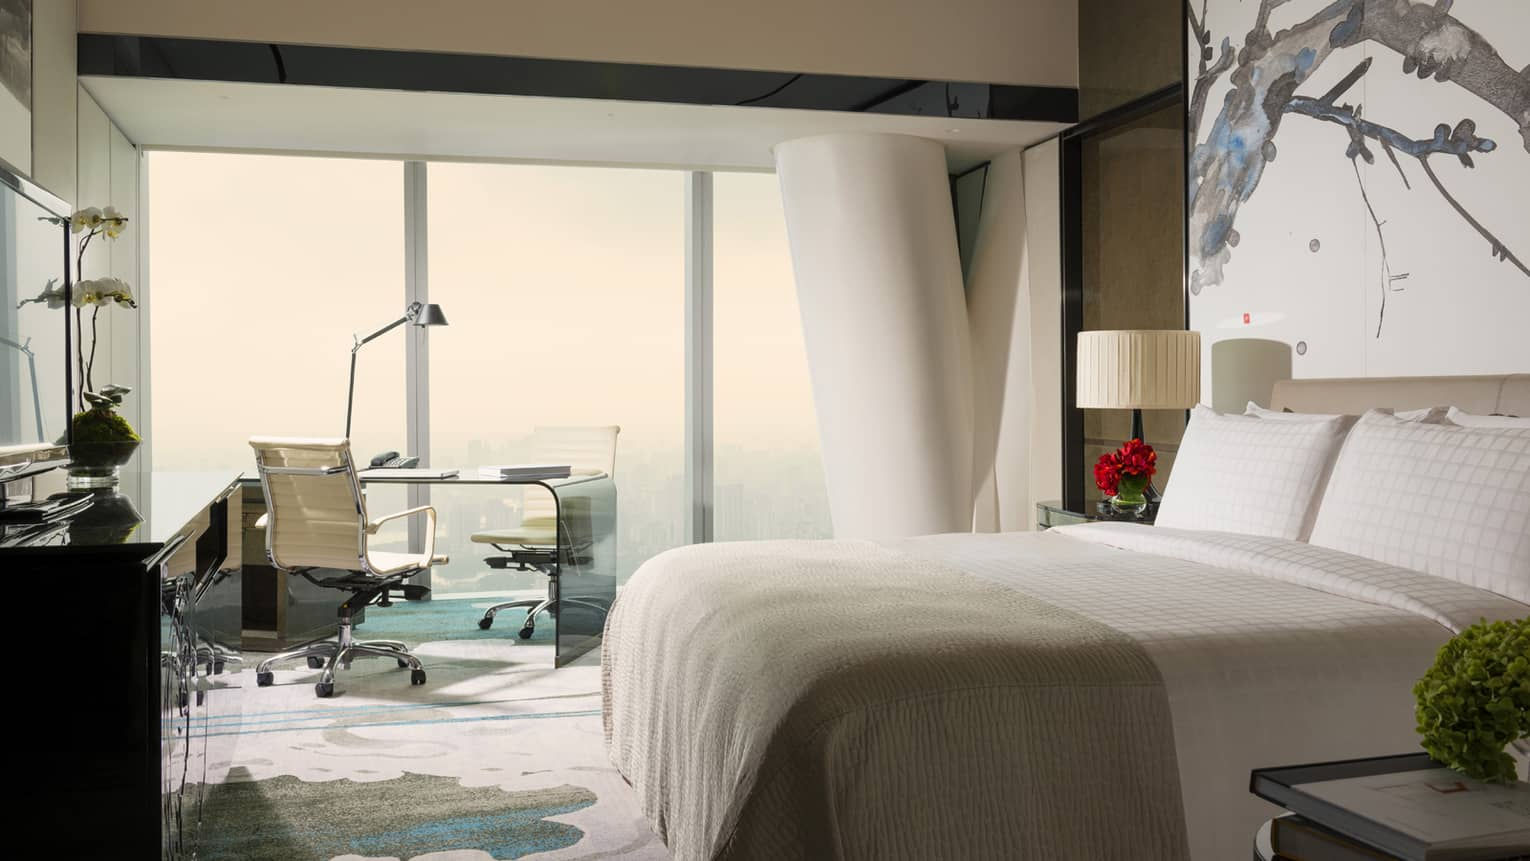 Tower Room with View bright decor with white bed, white and blue carpet and art, floor-to-ceiling window